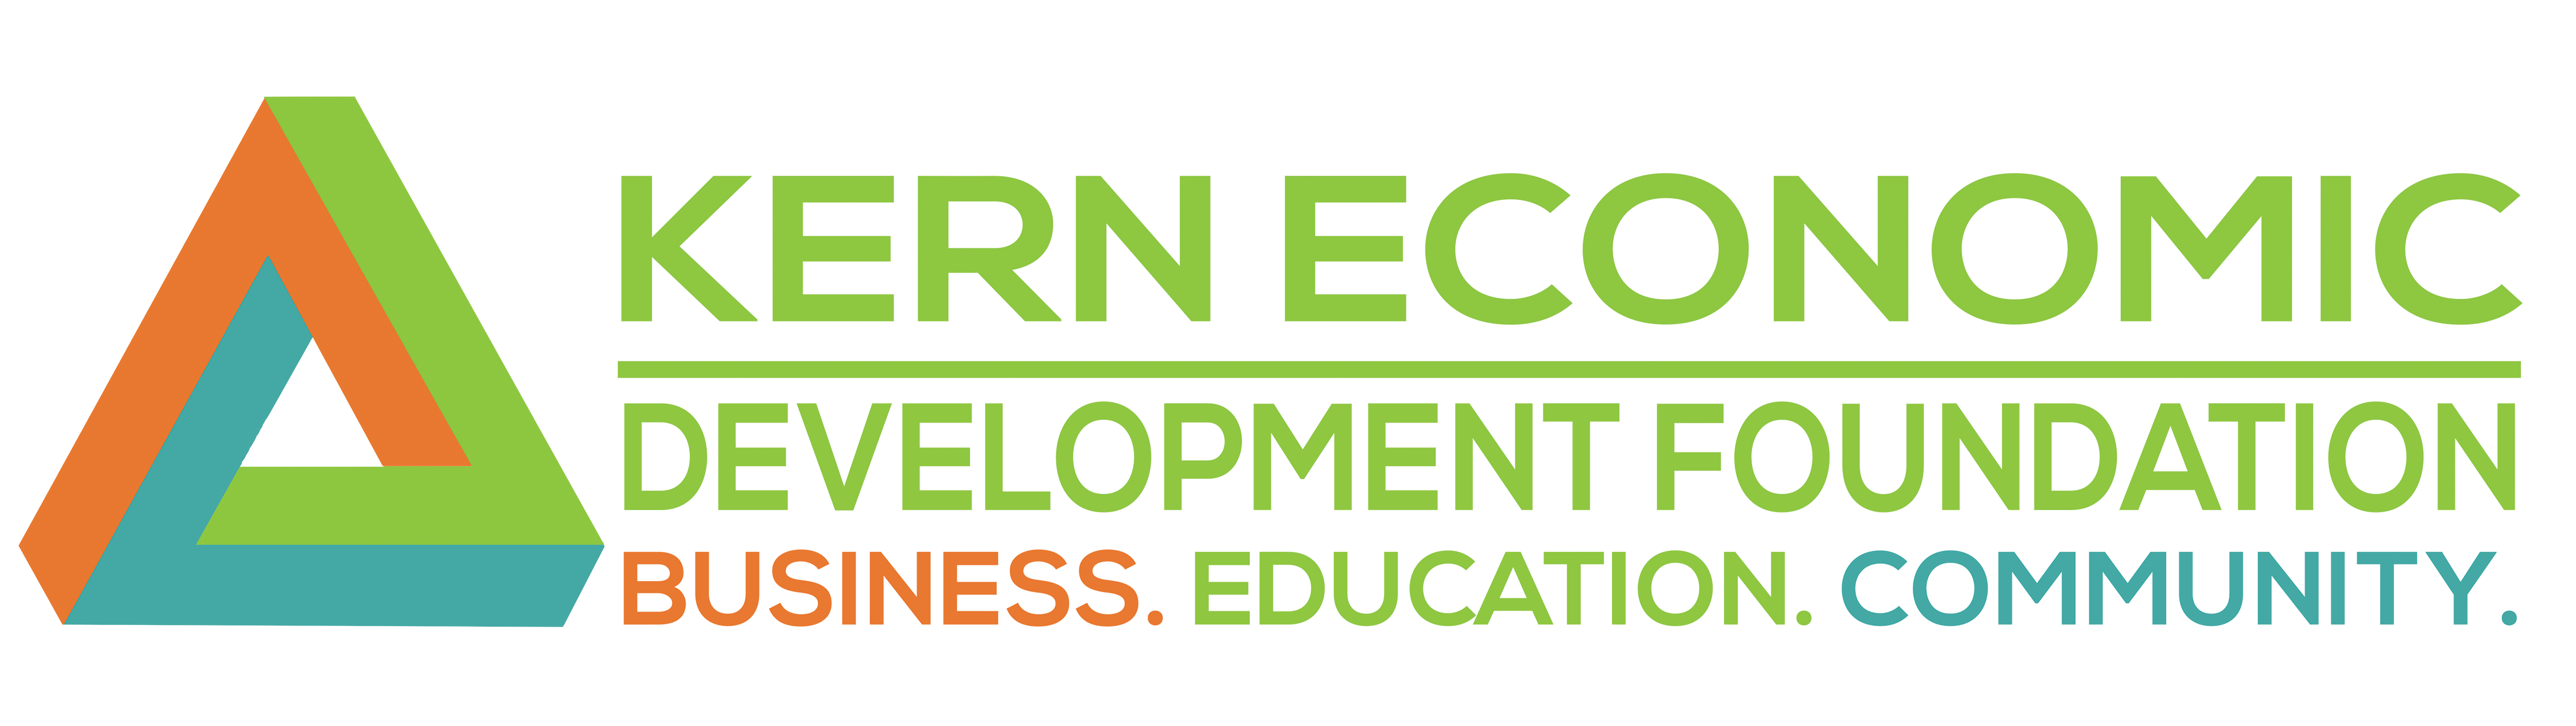 Kern Economic Development Foundation